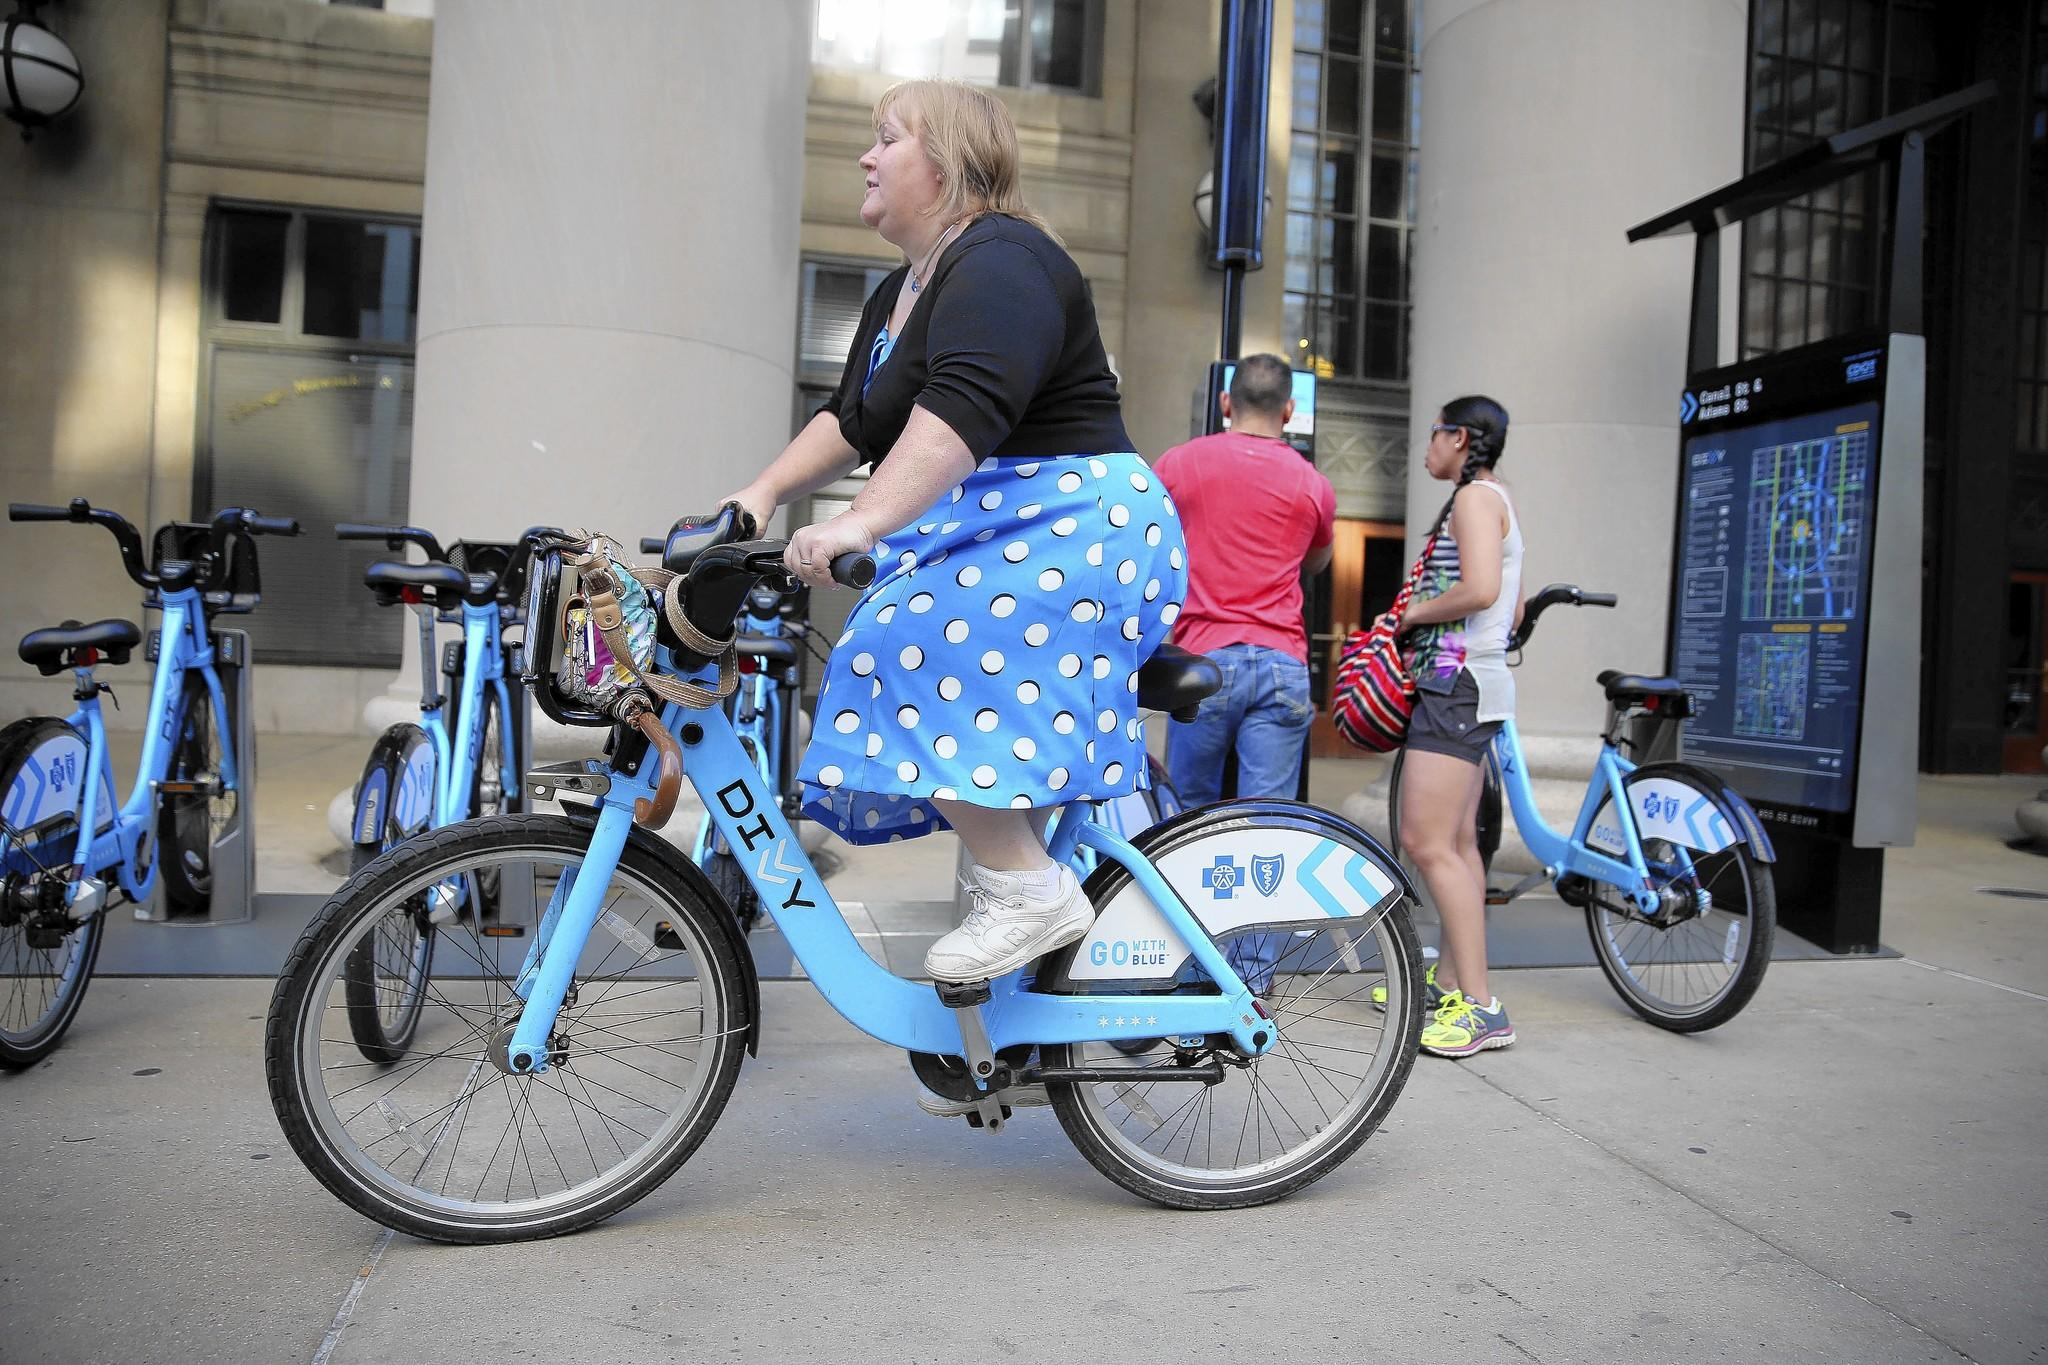 Sherri Frickel, of Hammond, rides a Divvy bike last week from a station at 225 S. Canal St., near her workplace in Chicago, to the South Shore Line that will take her home after work.